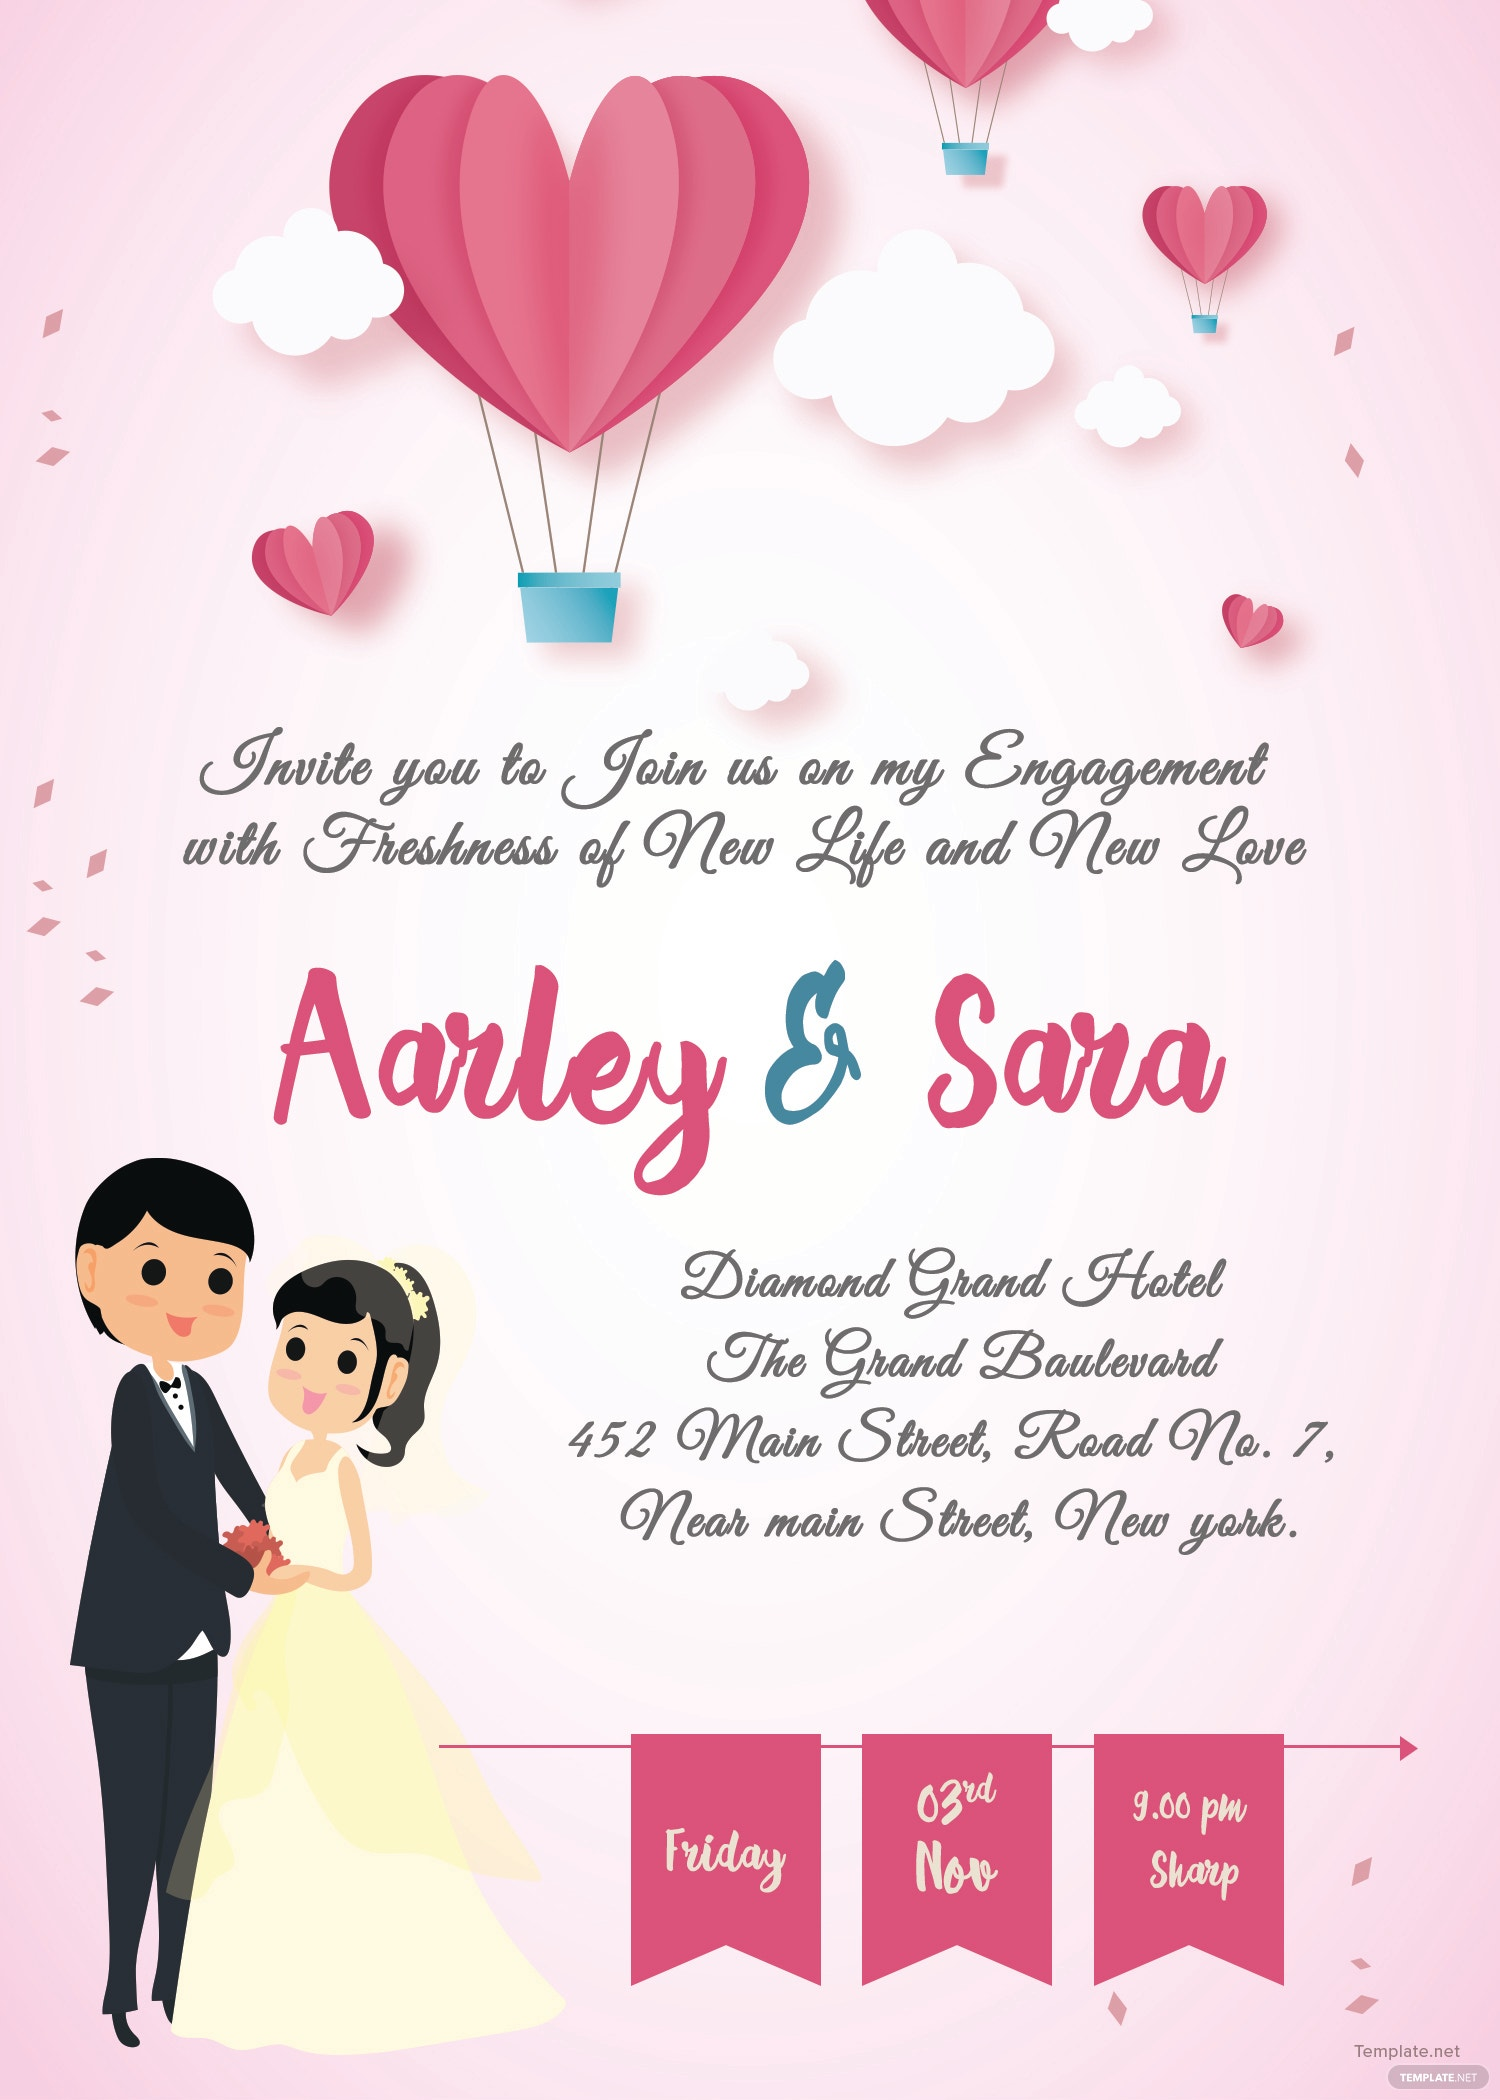 free elegant engagement invitation card template in adobe photoshop  illustrator